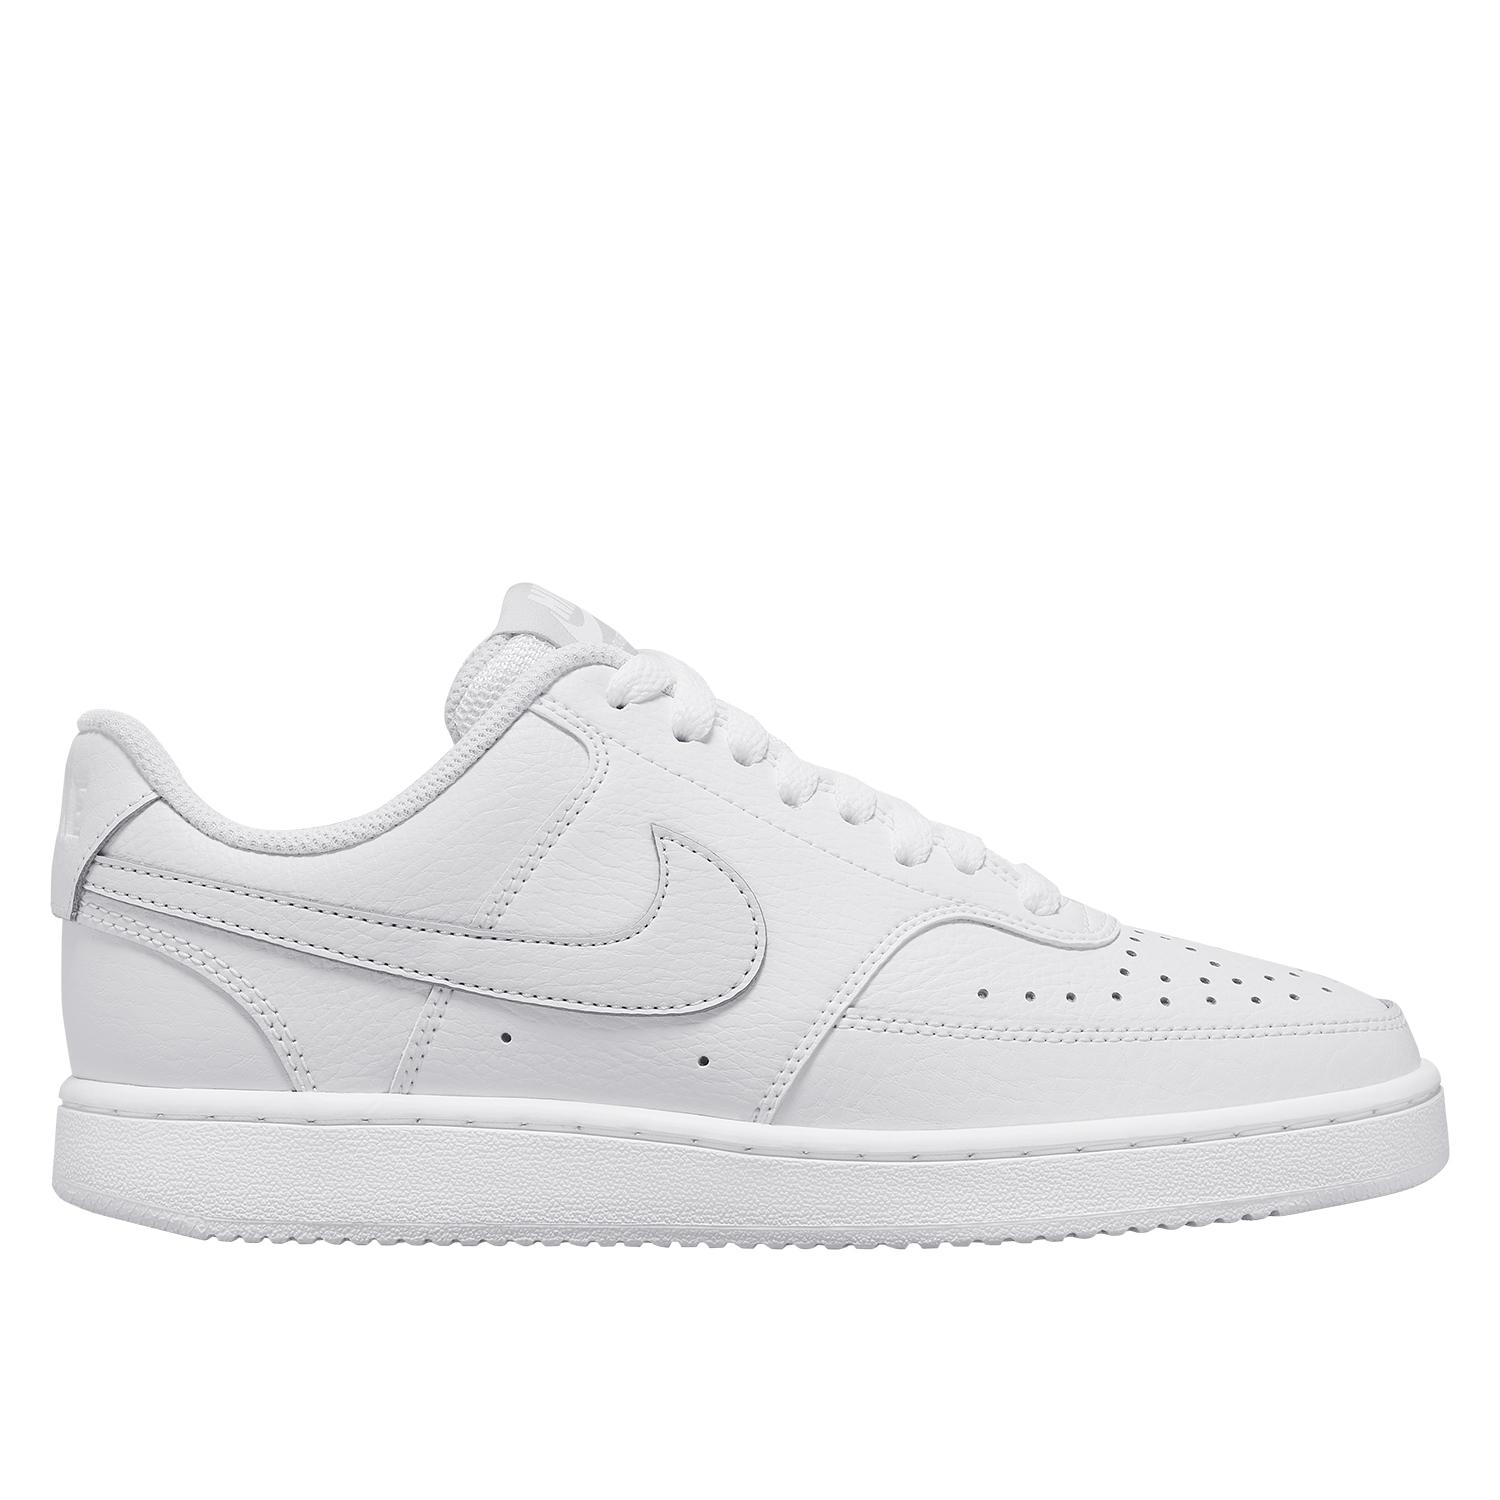 Court Vision Low Womens